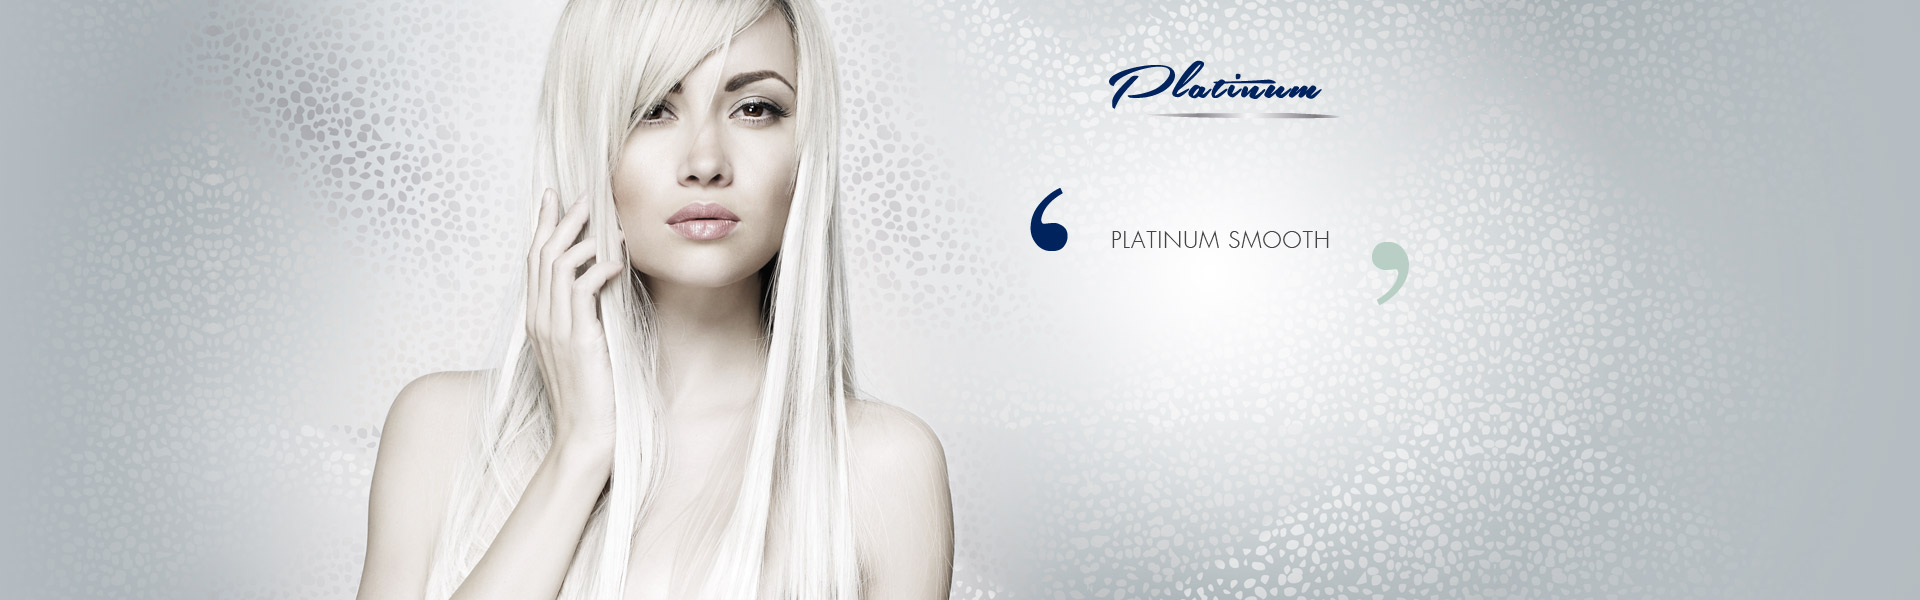 platinum smoothing treatment